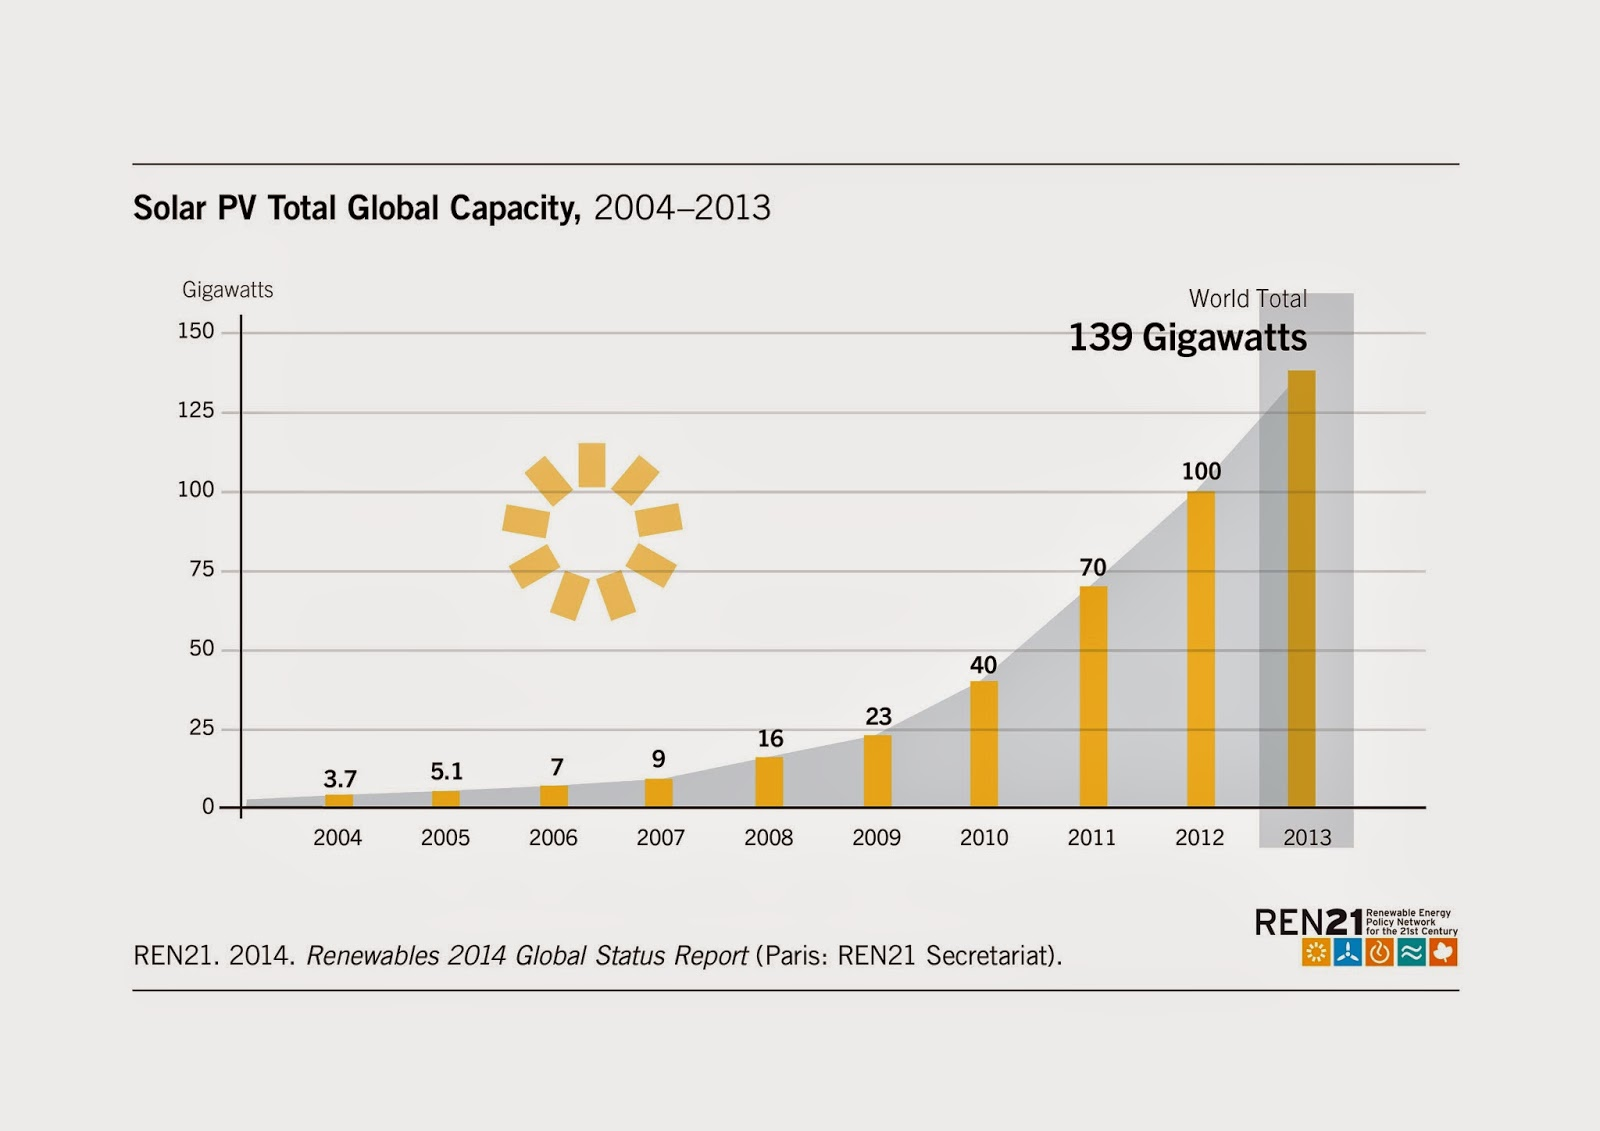 Global Photovoltaic Pv Solar Installations Will Rise To